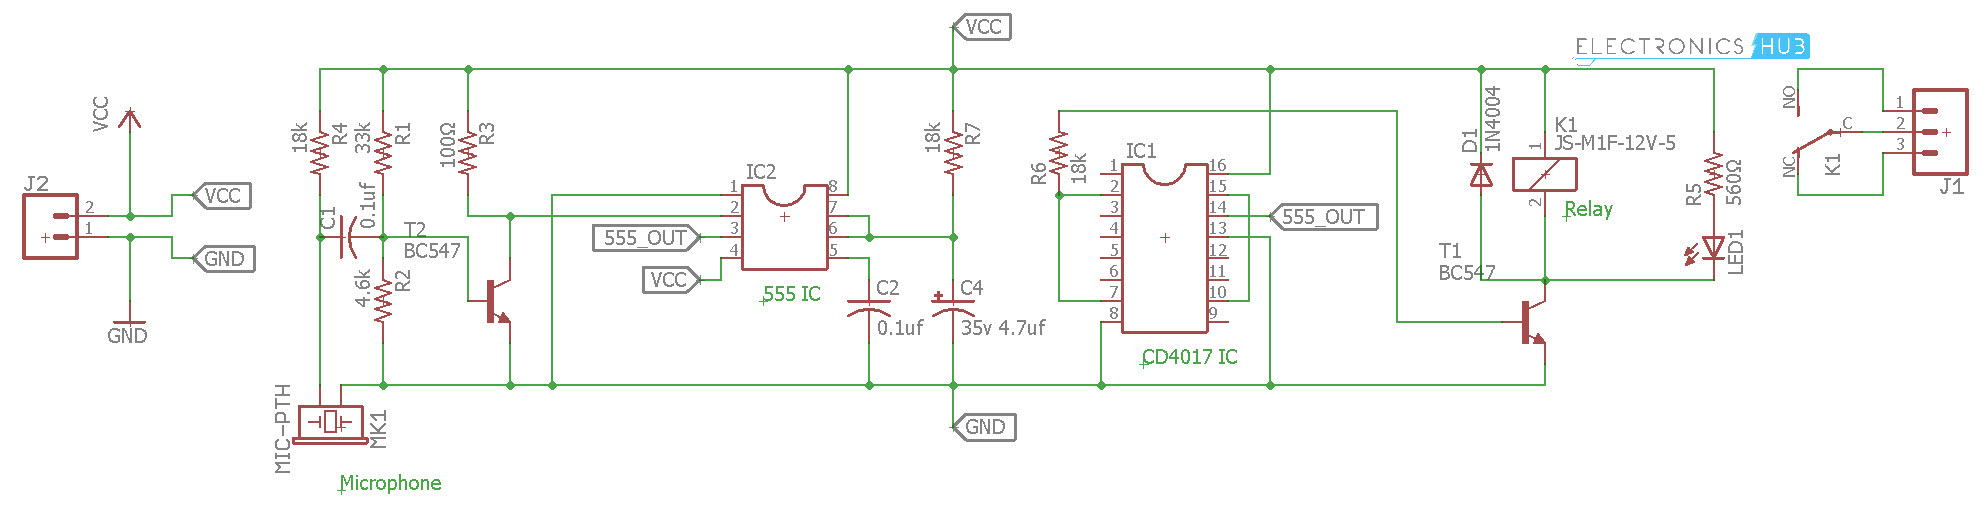 clap switch circuit for devices circuit working and applicationsclap switch circuit for devices using 555 and 4017 circuit diagram